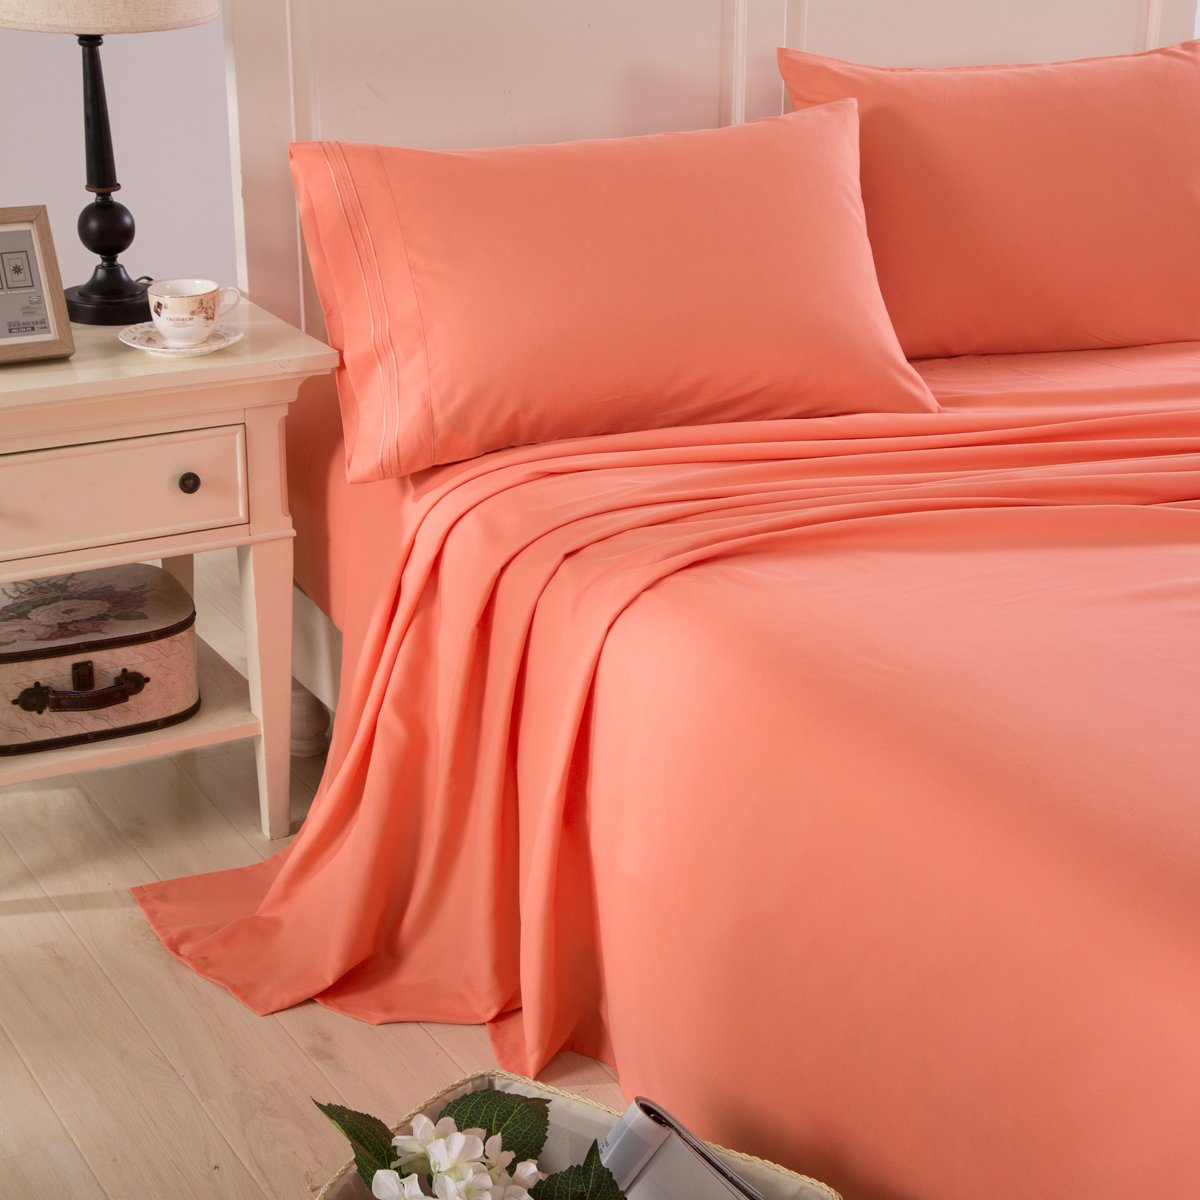 Honeymoon Embroidered 1800 Brushed Microfiber Ultra Soft Queen Bed Sheet Set, Coral